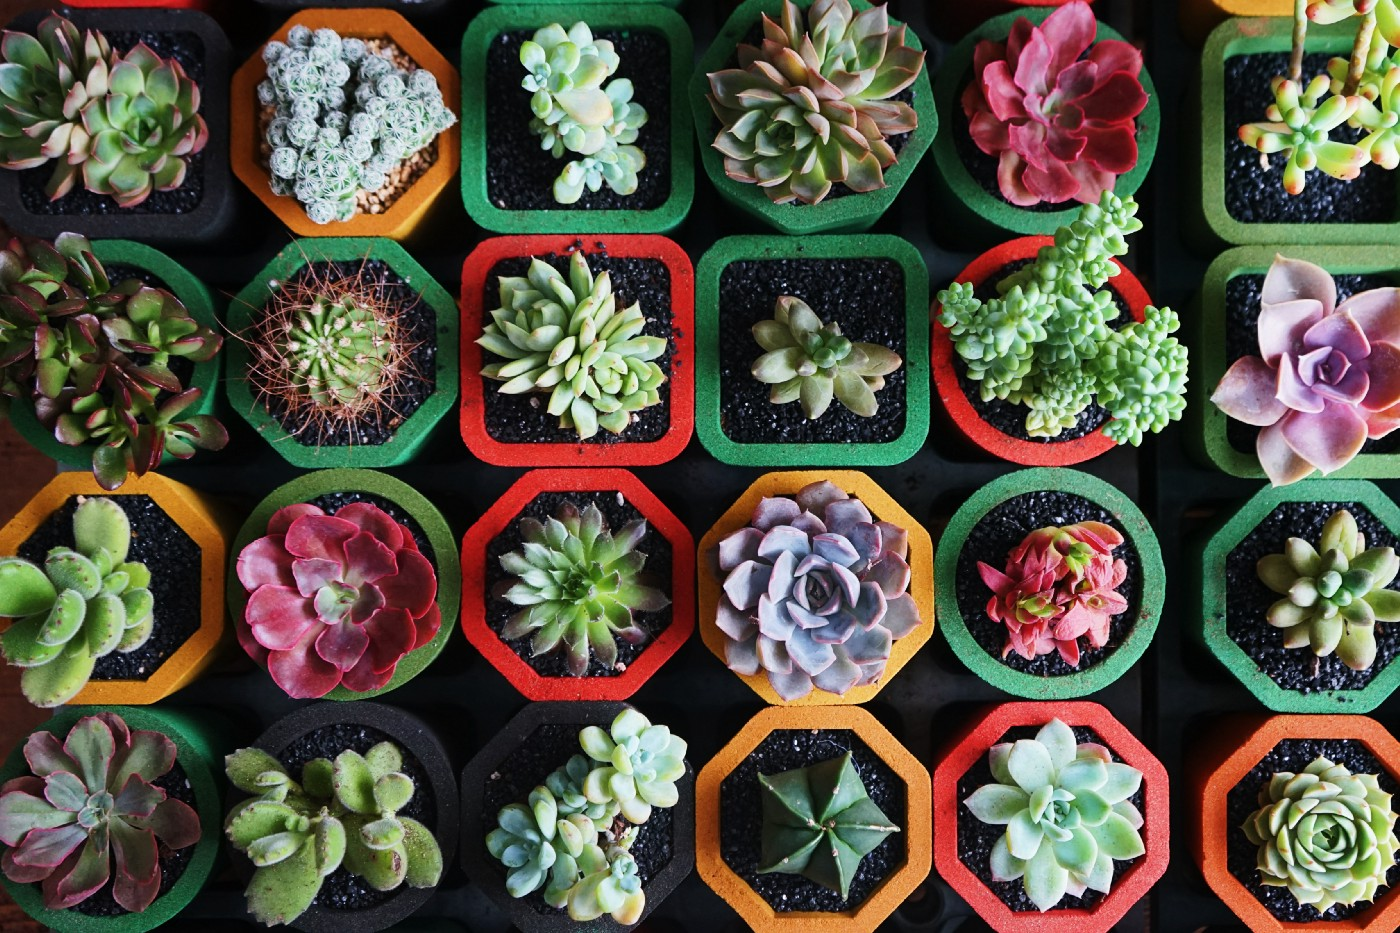 A variety of succulent plants in individual pots